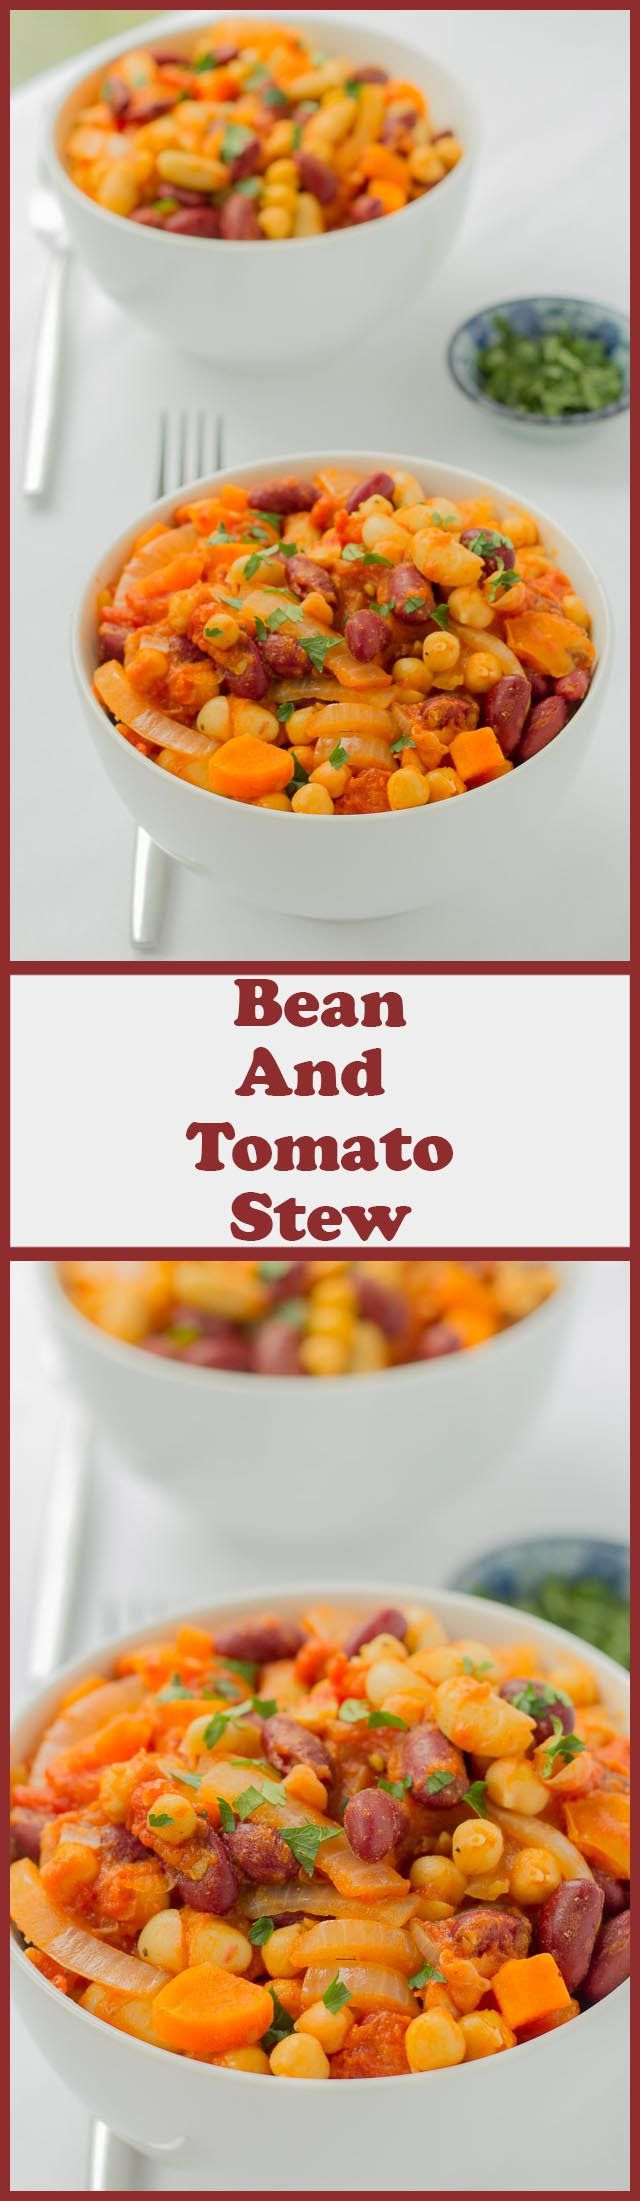 This bean and tomato stew recipe is an easy, delicious one pot solution for when you need a quick healthy meal on the table yesterday! High in dietary fibre and bursting flavour, it's sure to satisfy hungry tums.